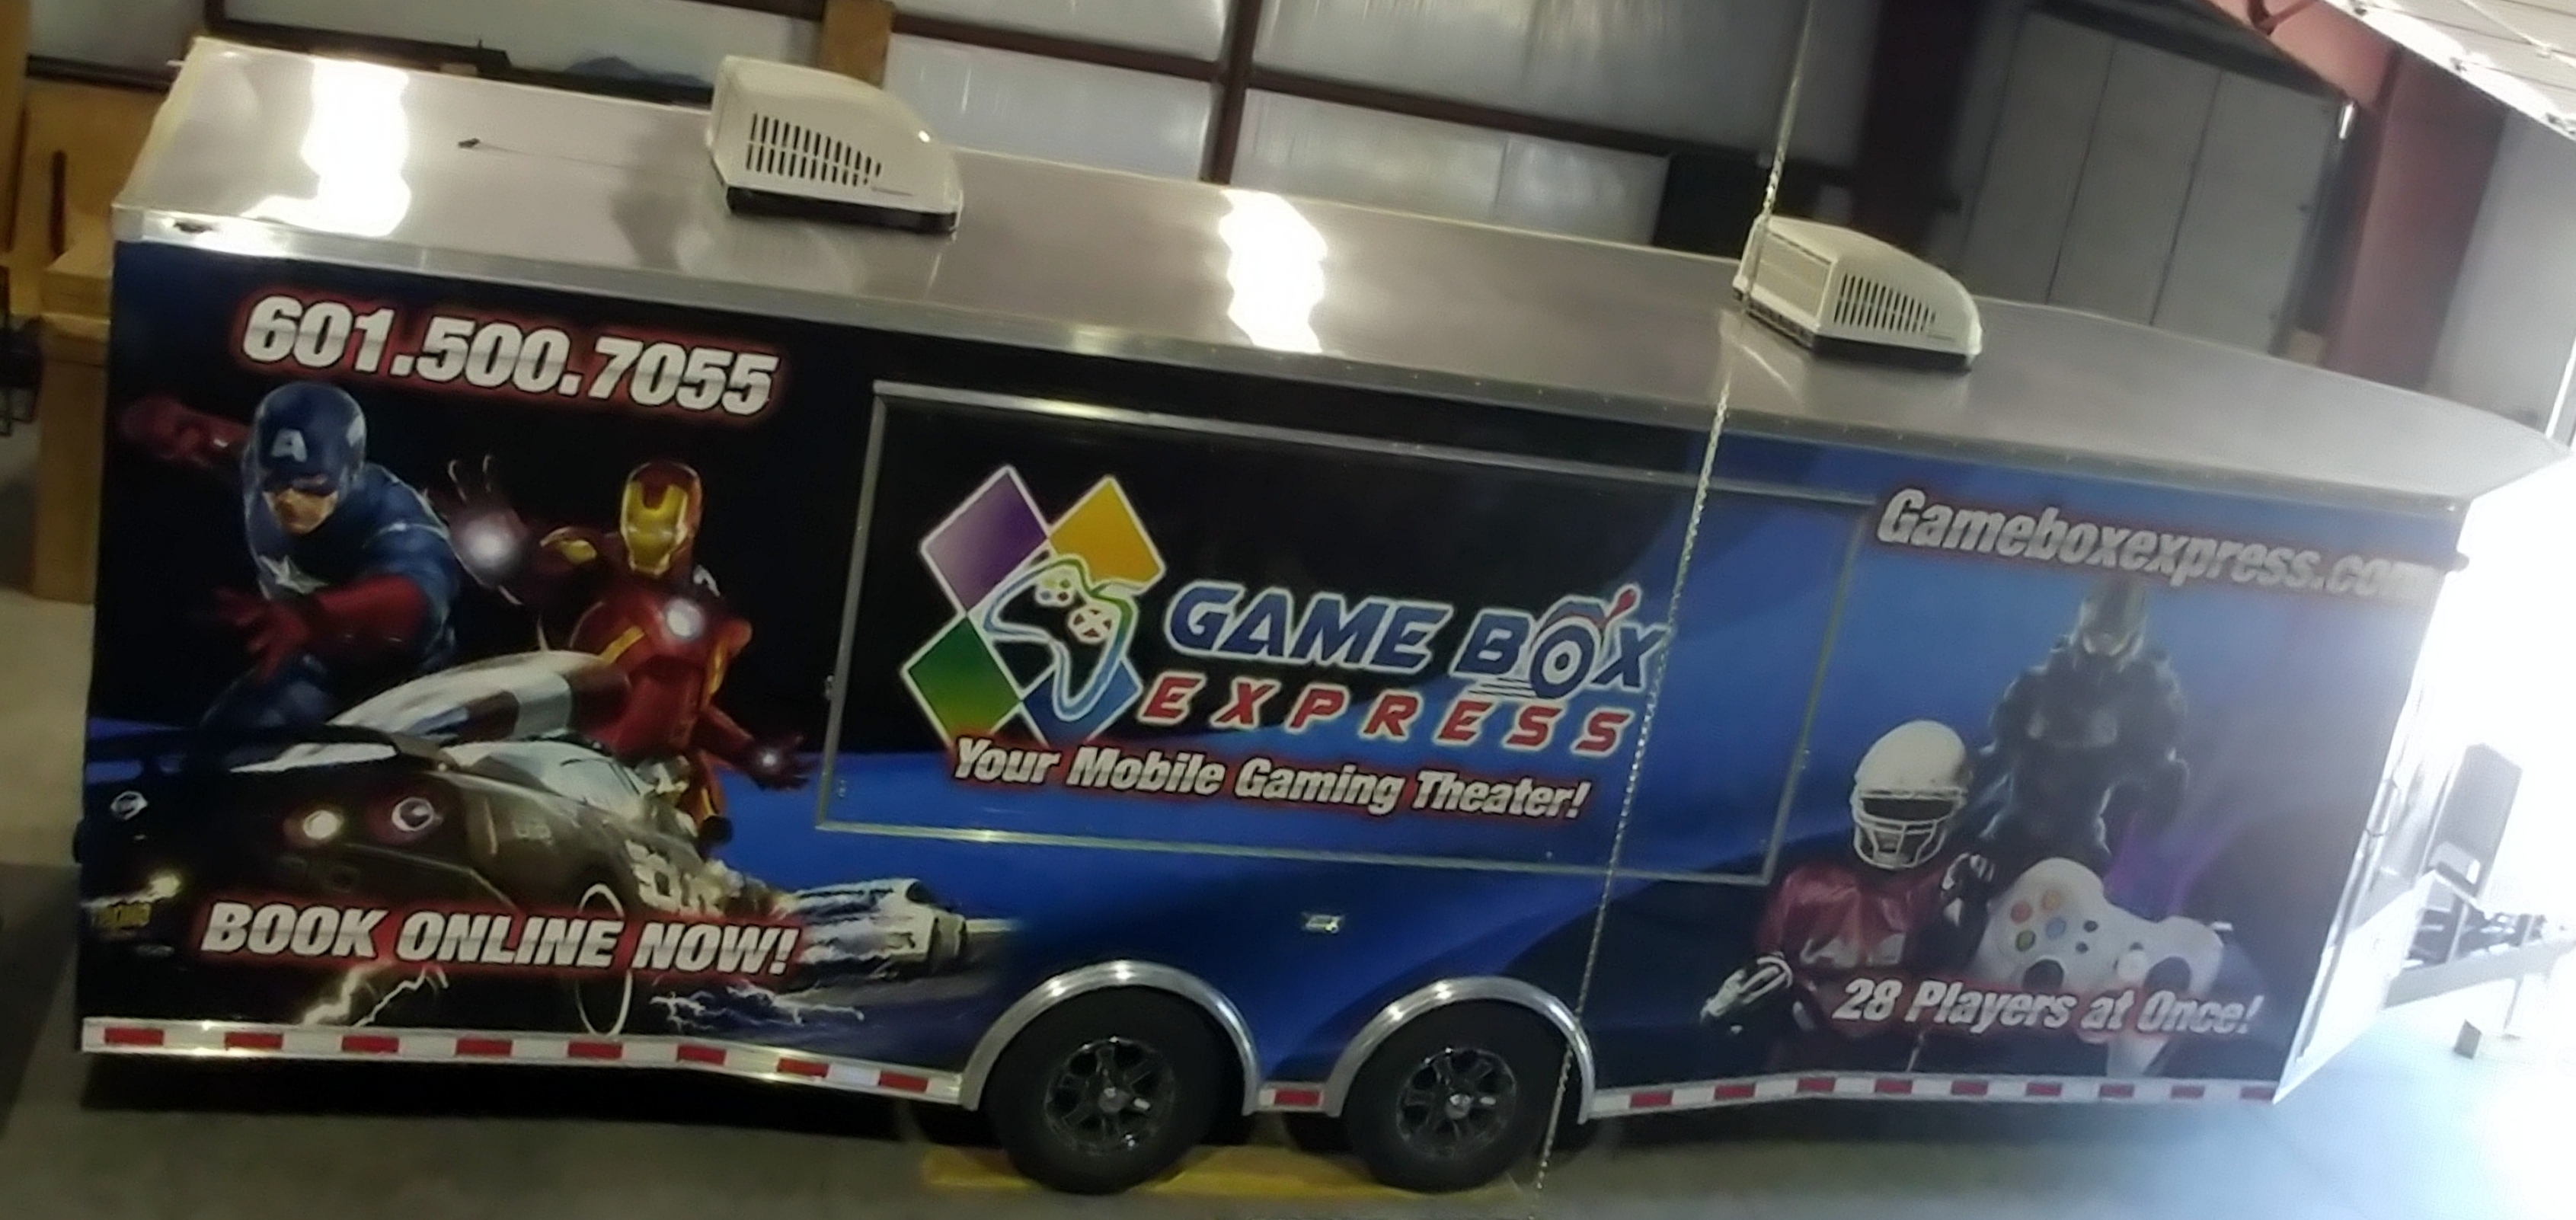 Game Box Express in the shop